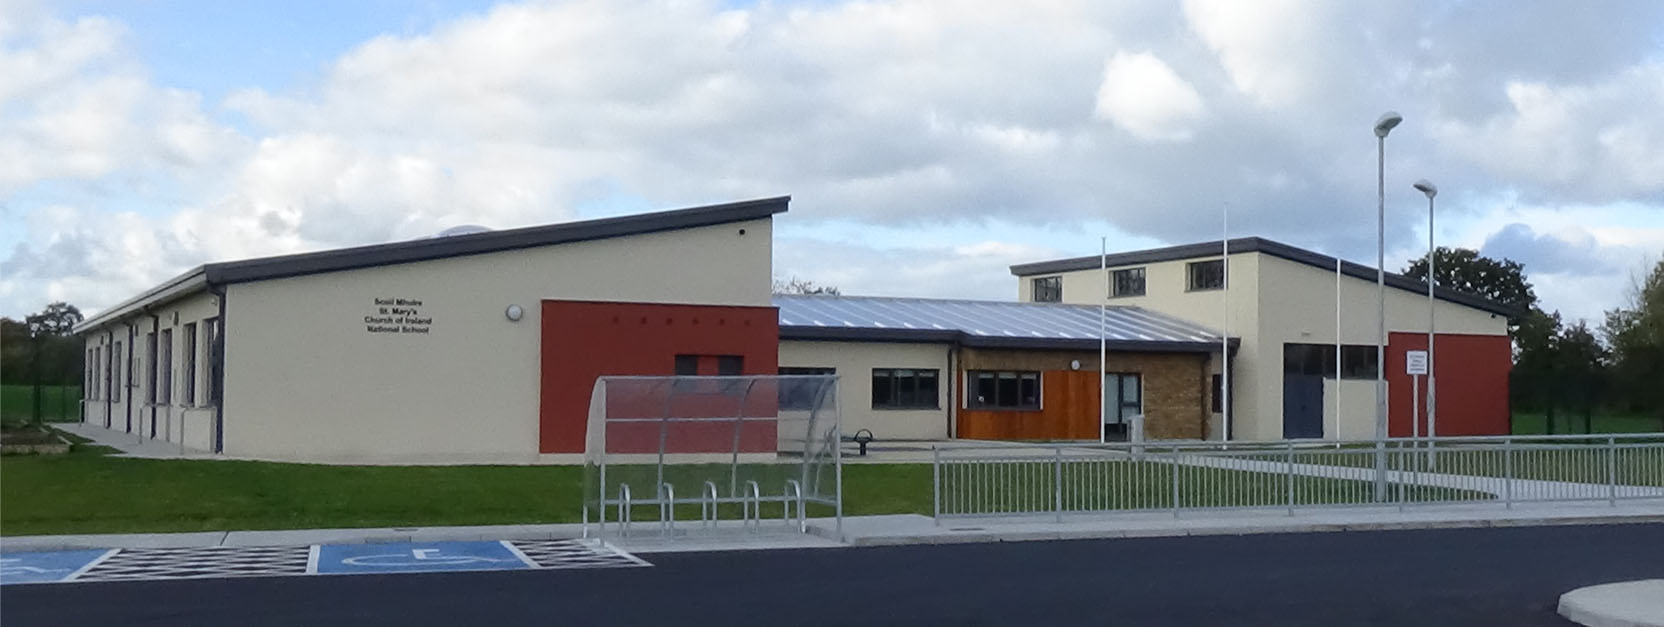 St Mary's National School, Bagenalstown